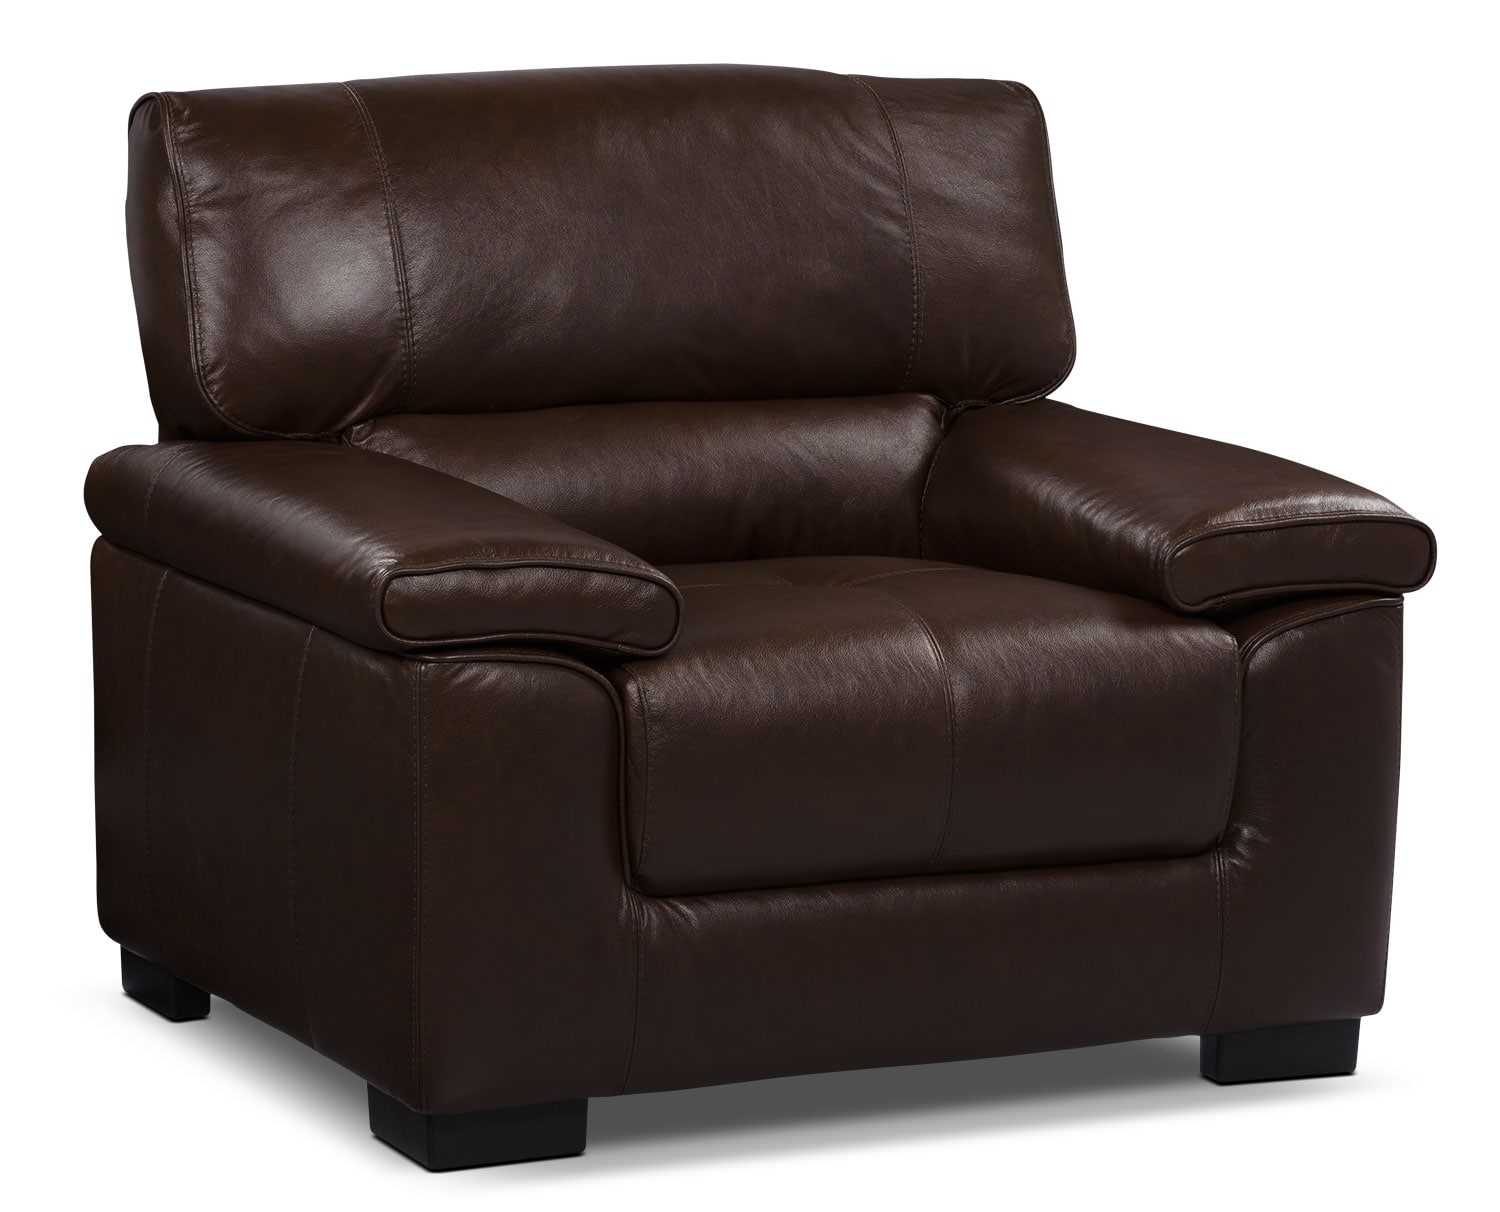 Chateau d'Ax 100% Genuine Leather Chair - Dark Brown